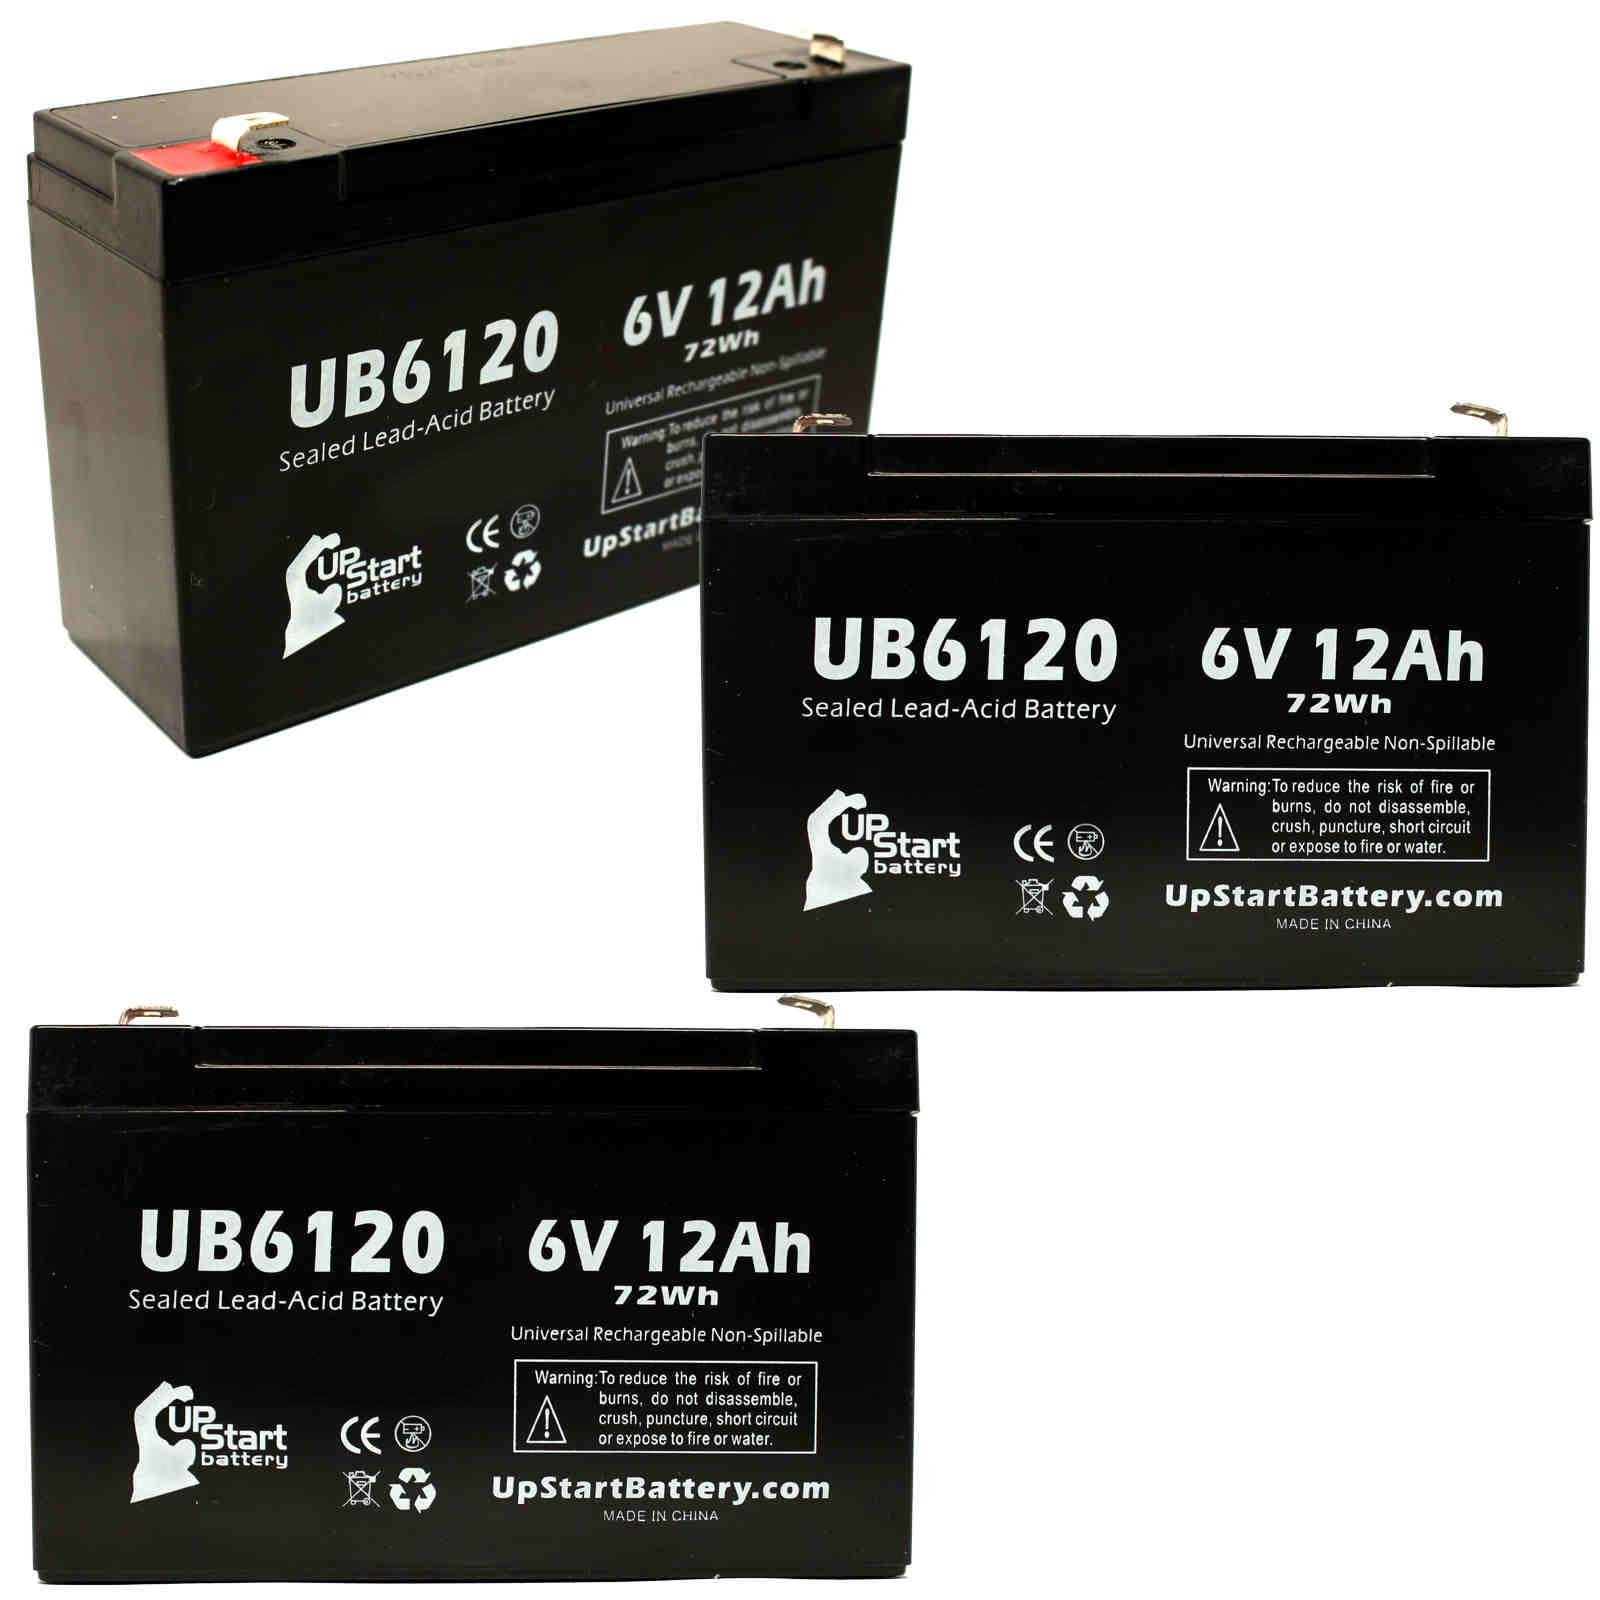 3 Pack Replacement for Tripp-Lite BCPRO1050 Battery - Replacement UB6120 Universal Sealed Lead Acid Battery (6V, 12Ah, 12000mAh, F1 Terminal, AGM, SLA) - Includes 6 F1 to F2 Terminal Adapters